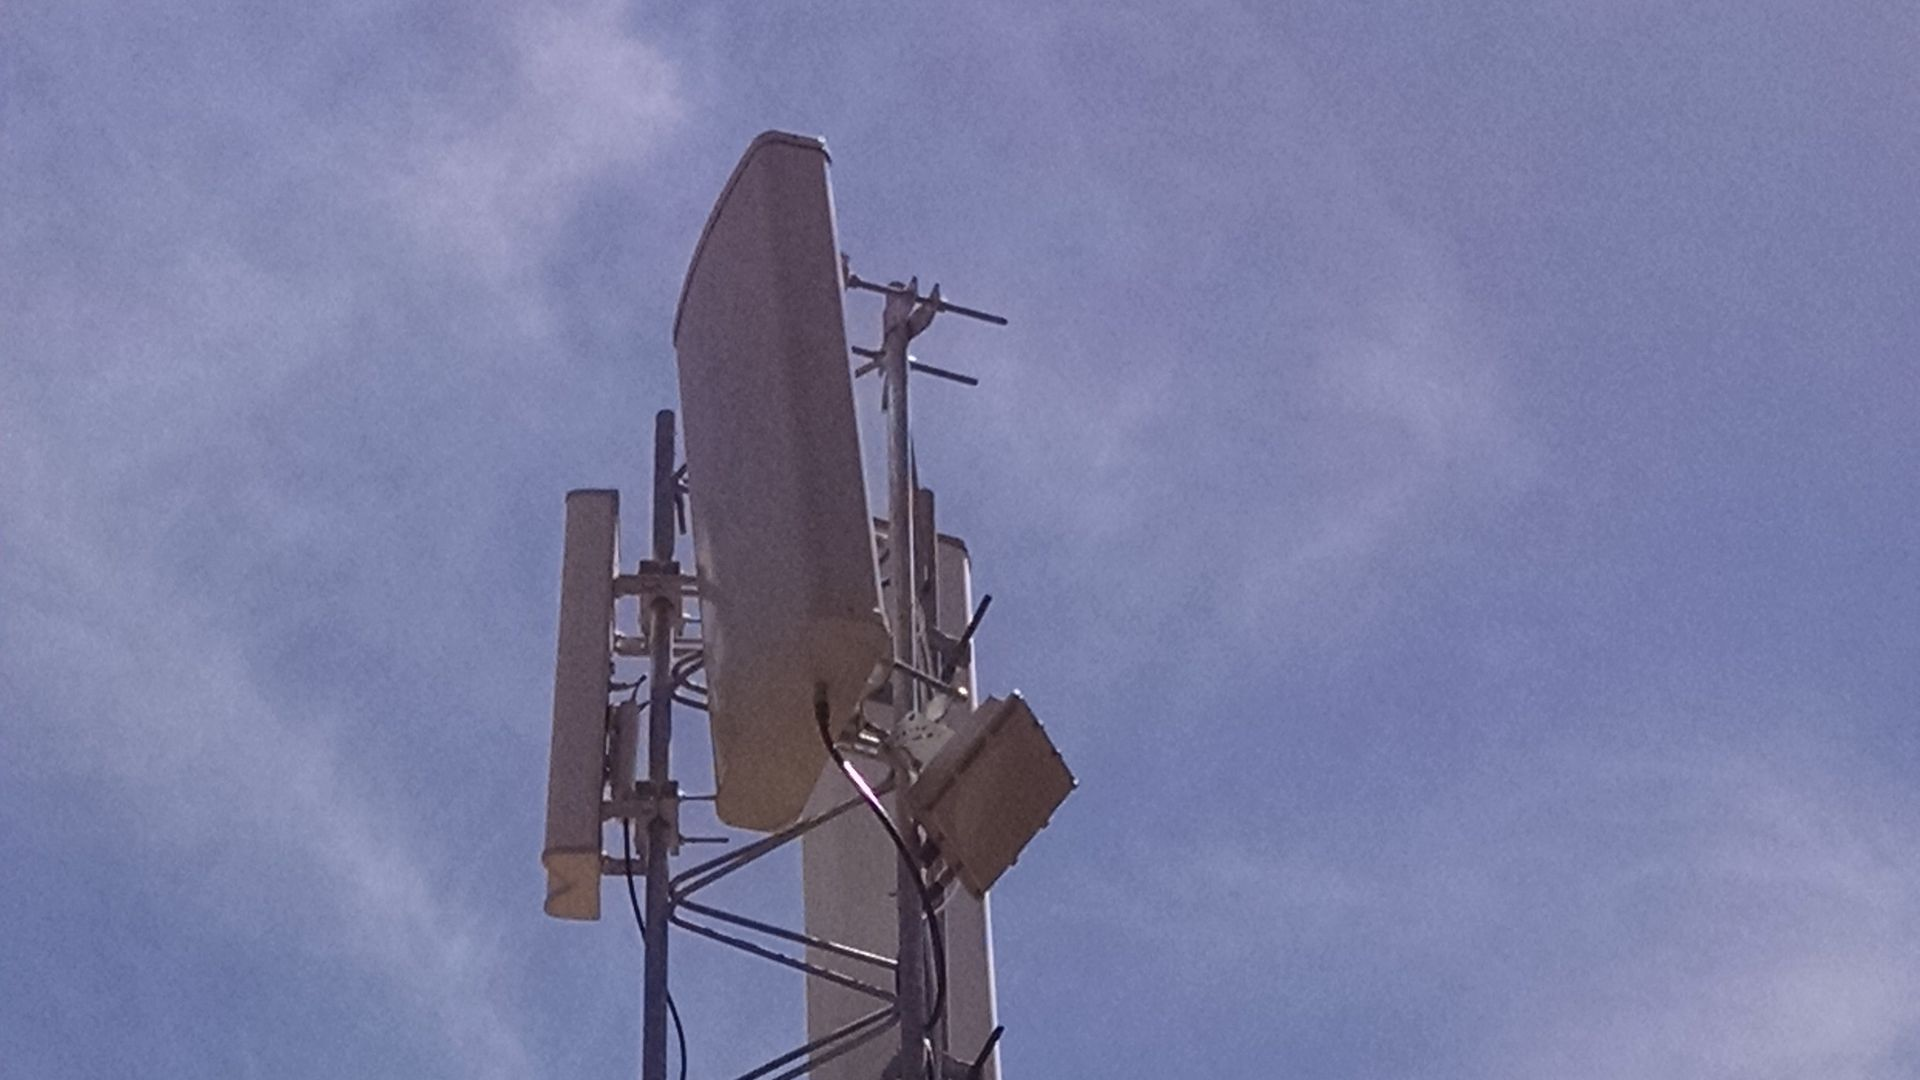 An antenna setup for delivering Internet service to rural areas using TV white spaces.